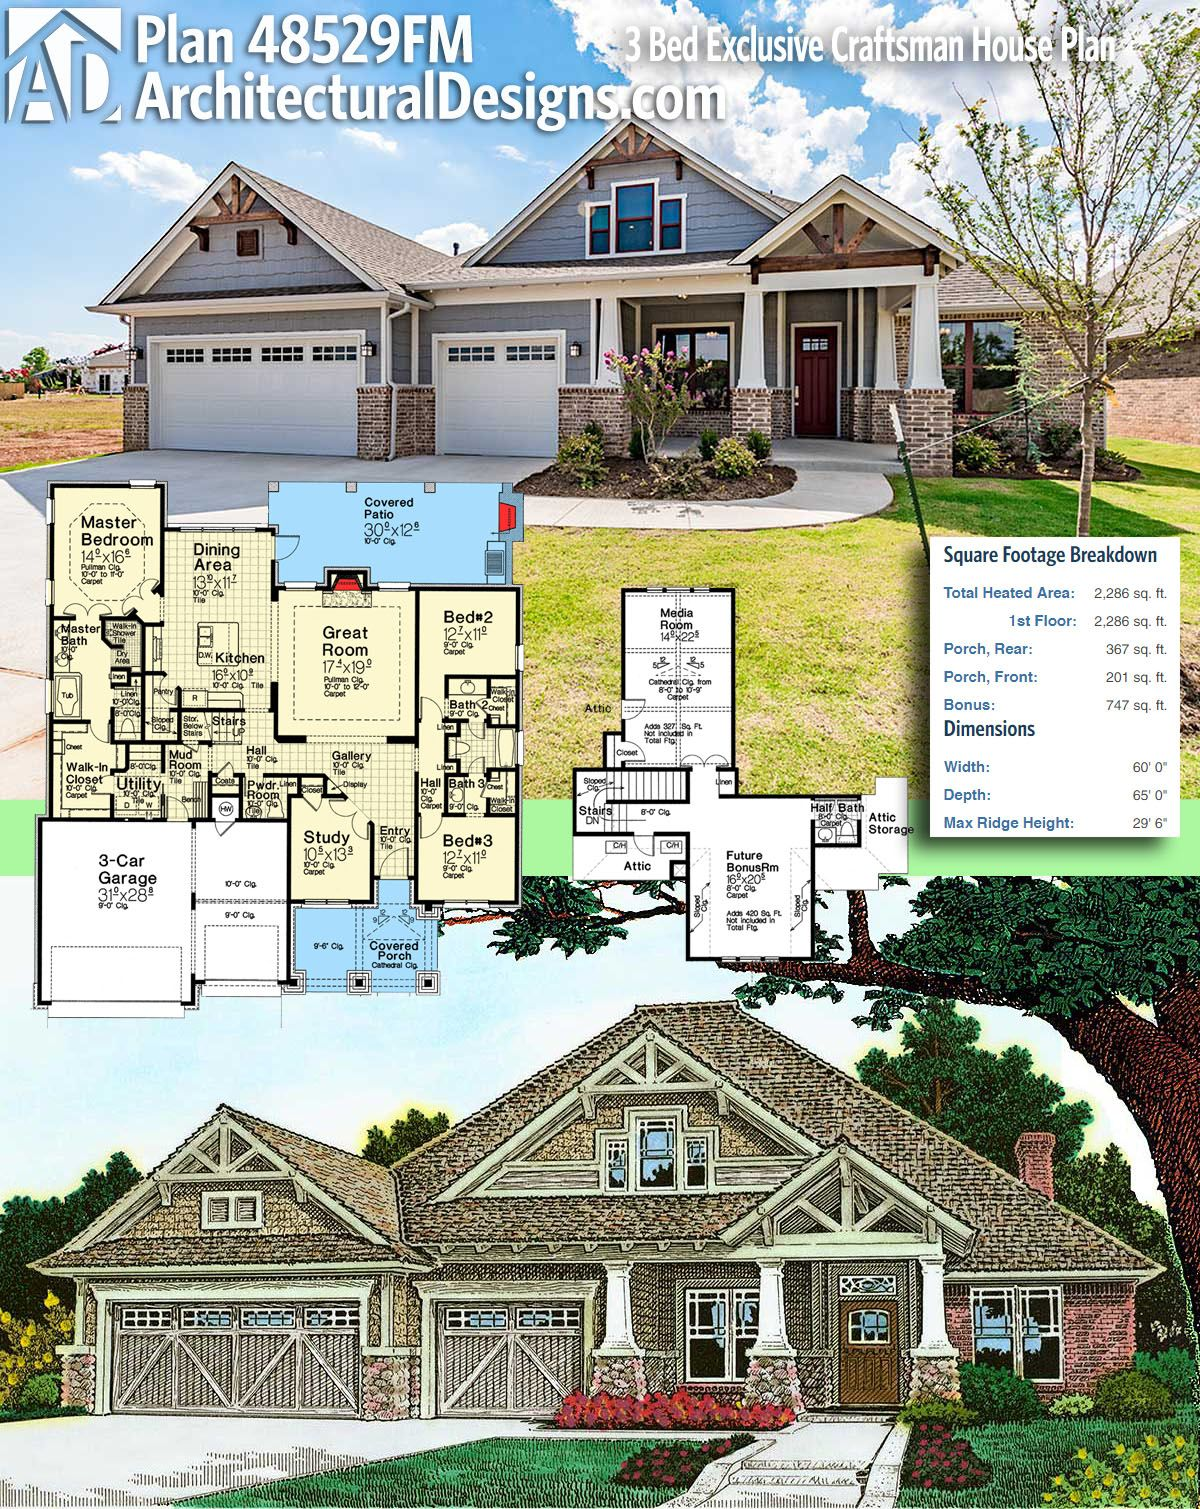 Plan FM Bed Exclusive Craftsman House Plan Square feet